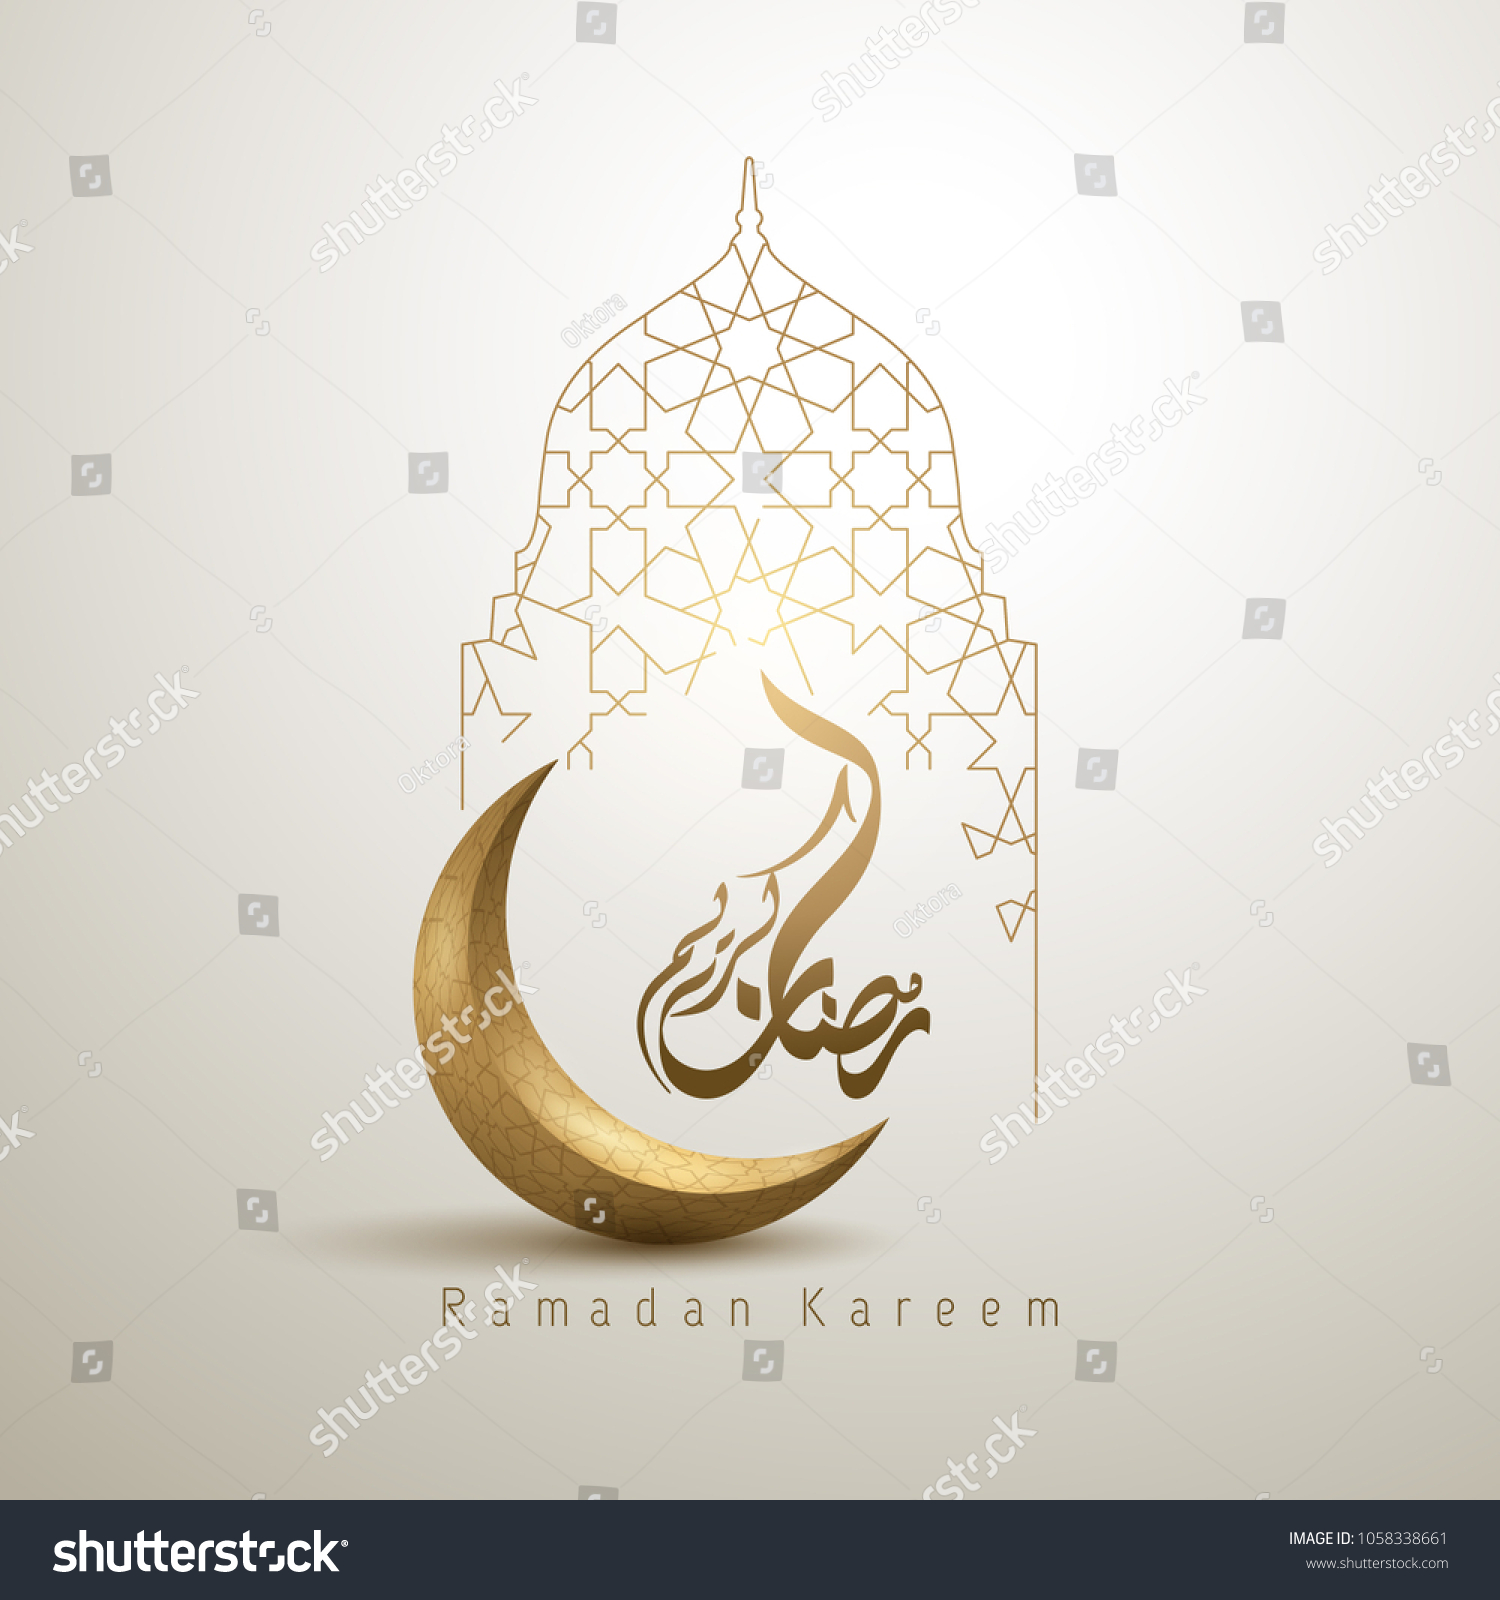 Ramadan Kareem islamic design crescent moon and mosque dome silhouette with arabic pattern and calligraphy #1058338661